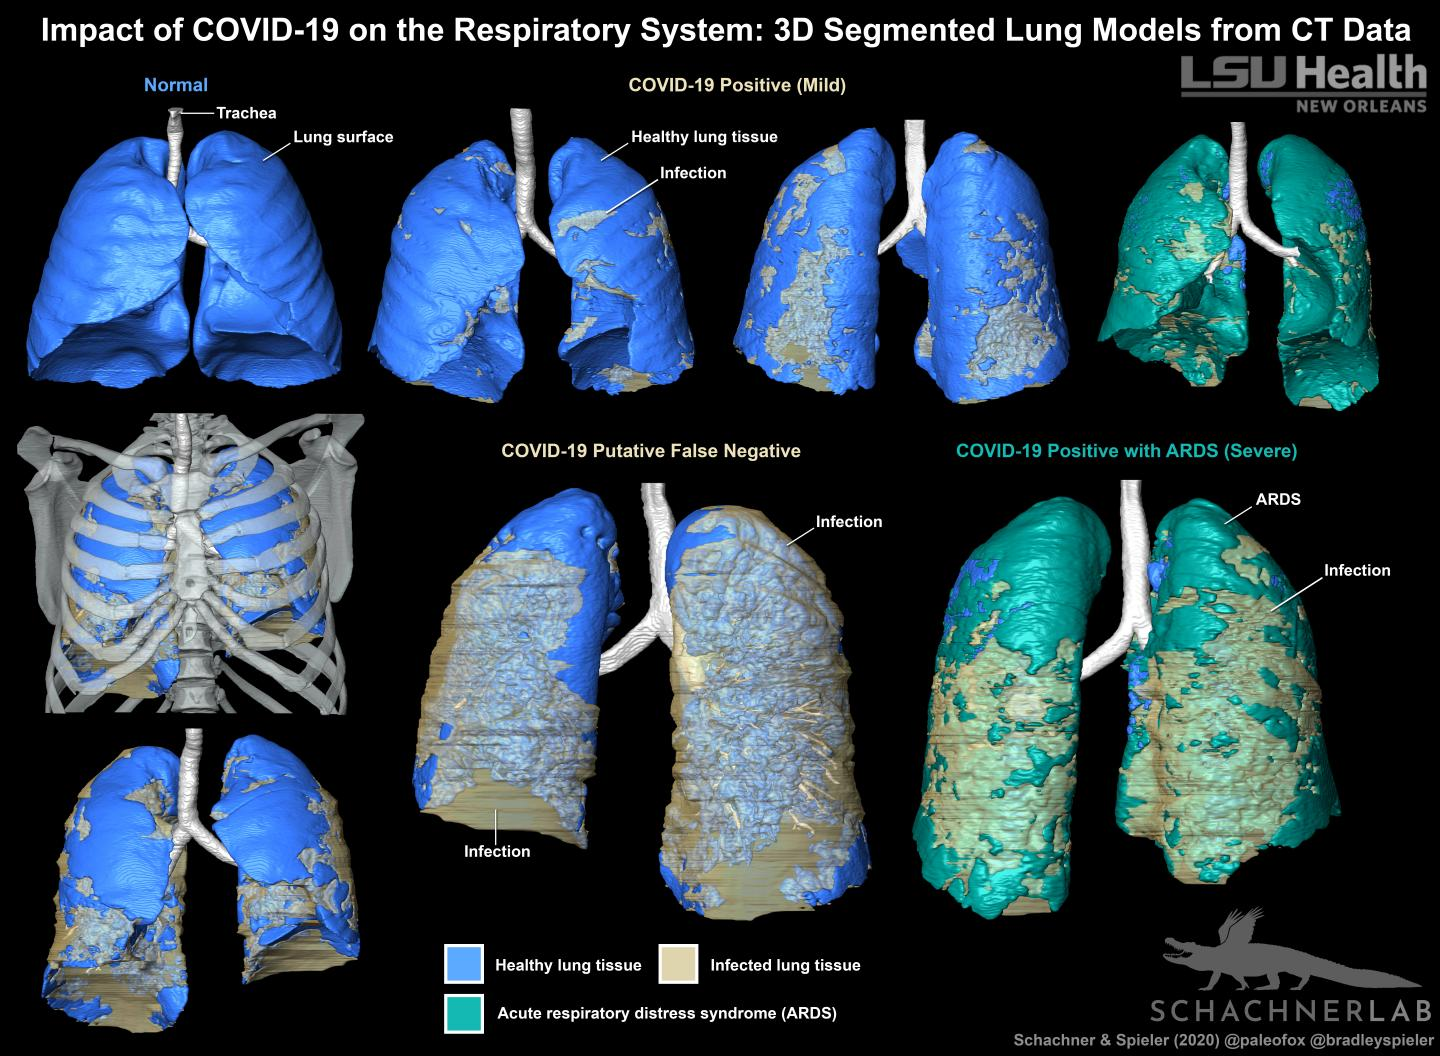 3D Segmented Lung Models of COVID-19 from CT Data